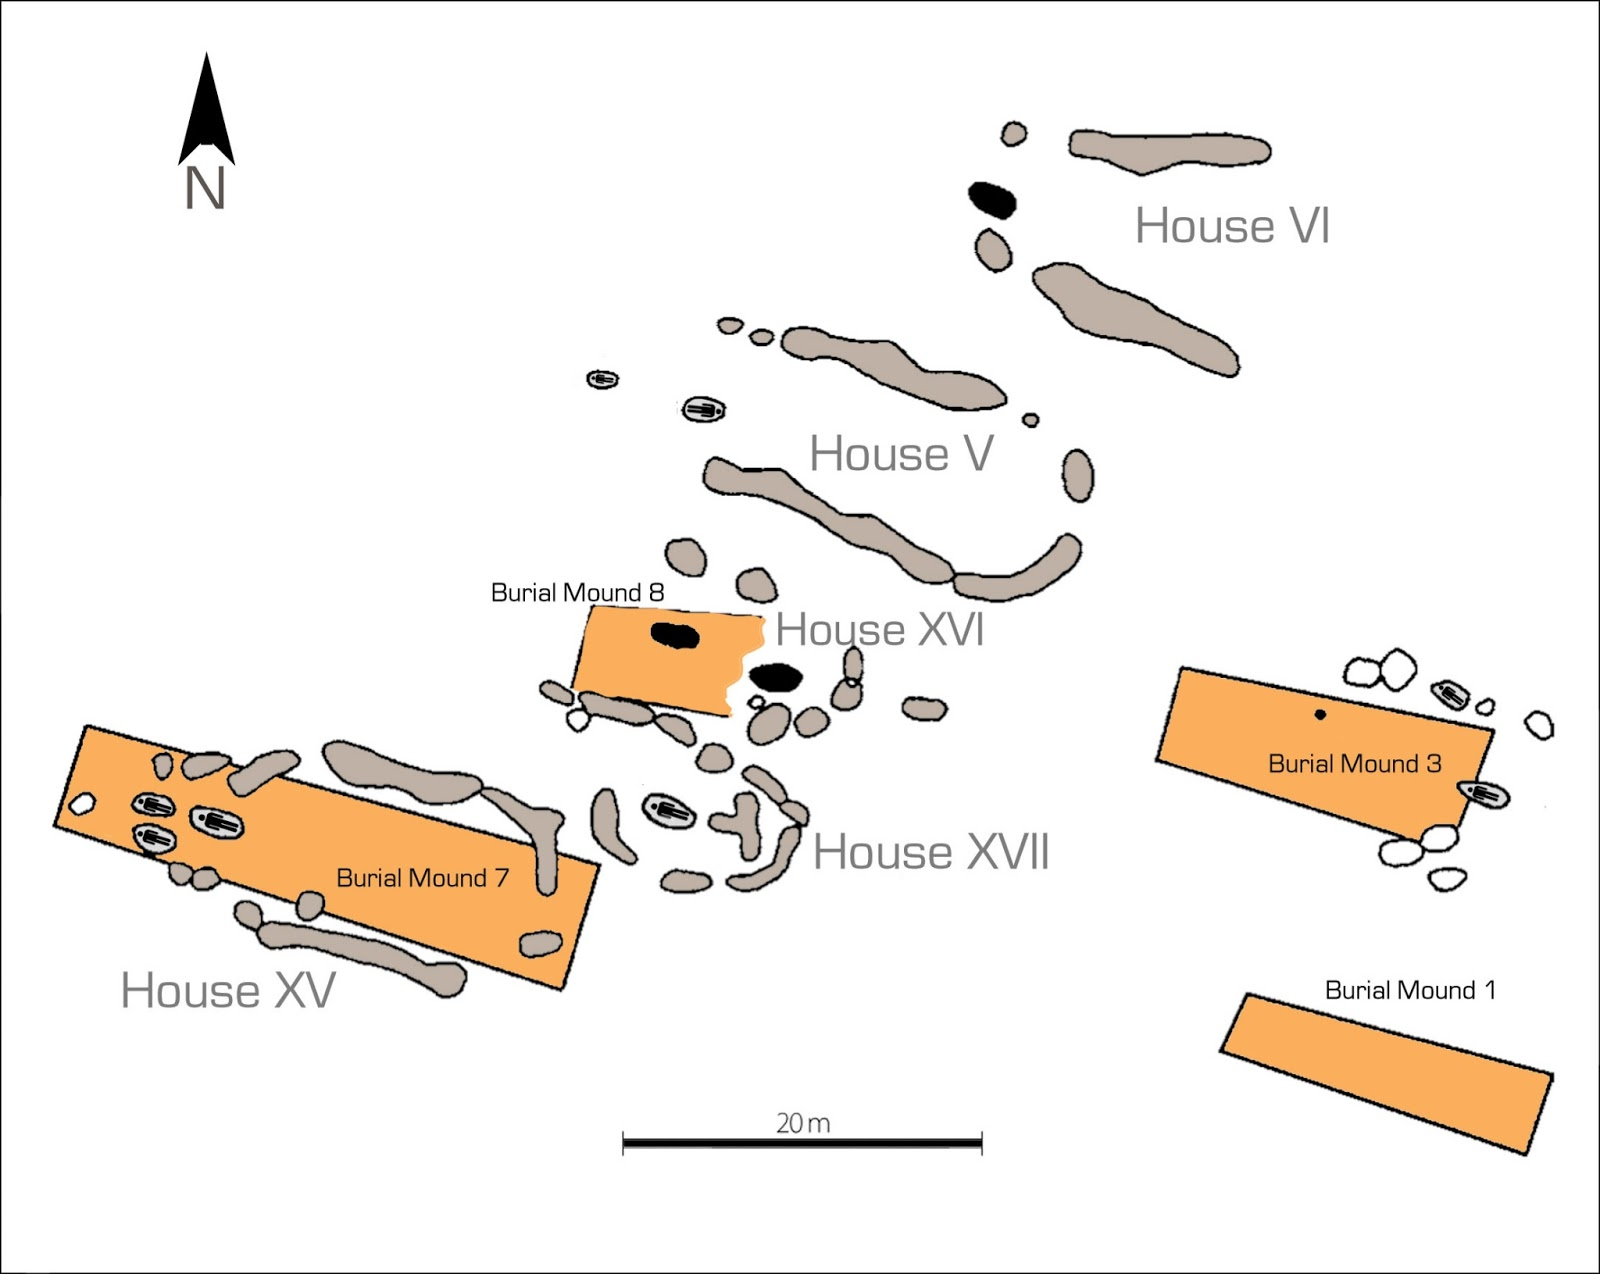 Plan of the central part of the settlement with long houses of the villeneuve saint germain culture superimposed by graves and long barrows of the cerny